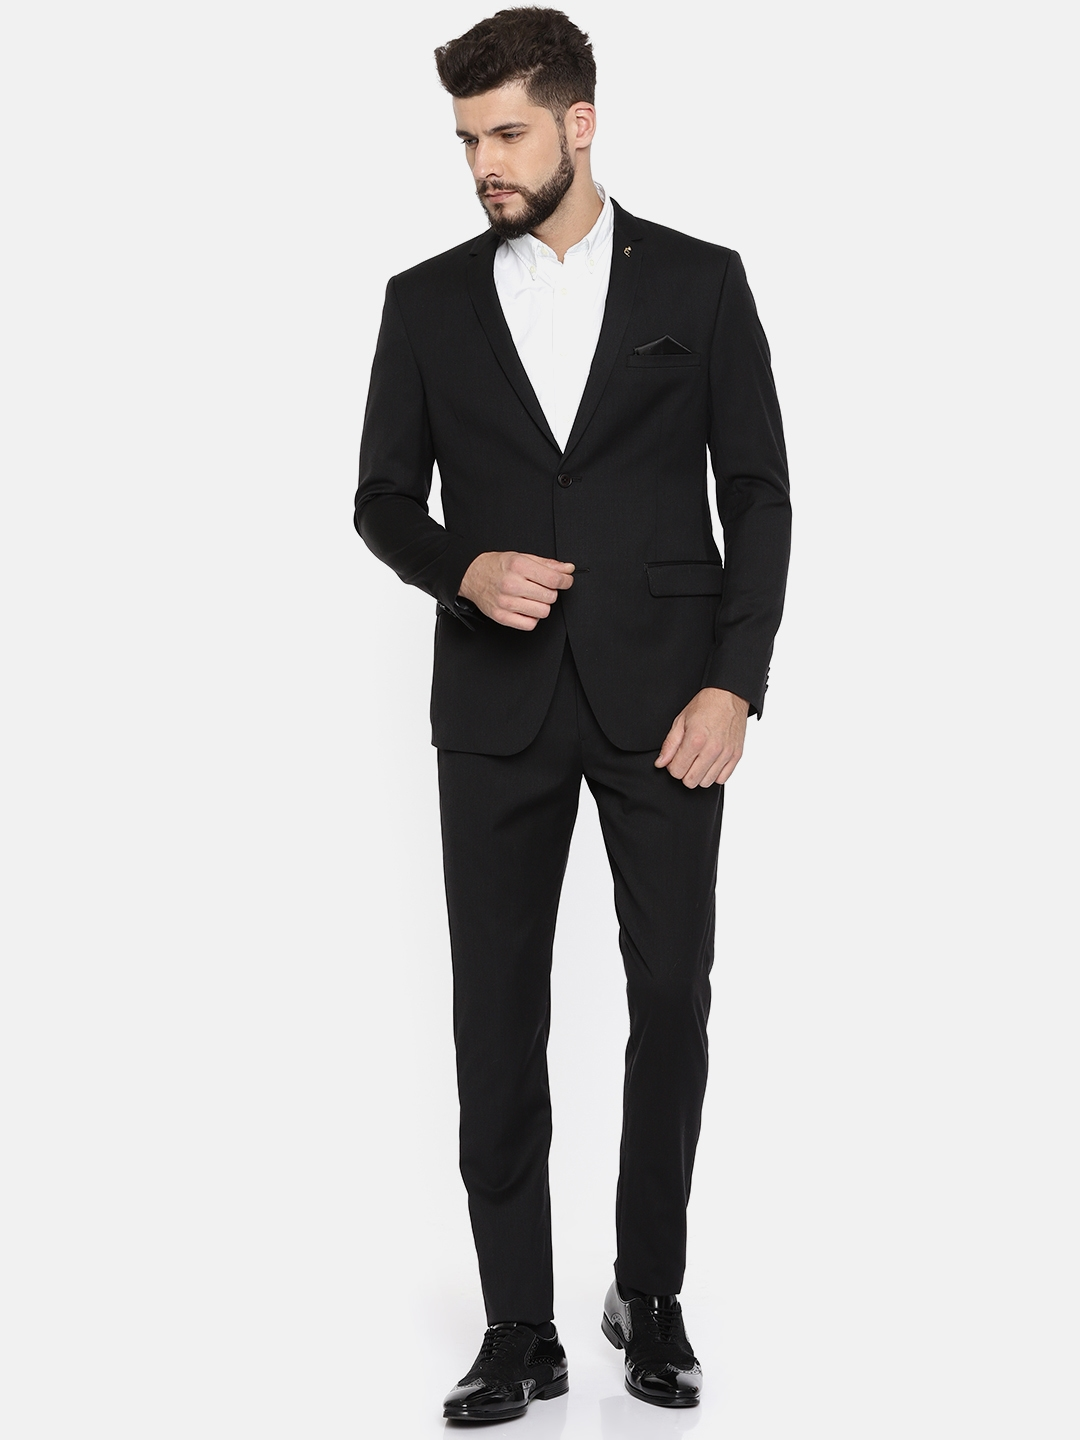 99c19dc8813 Buy Theme Black Woollen Single Breasted Tailored Fit Formal Suit ...